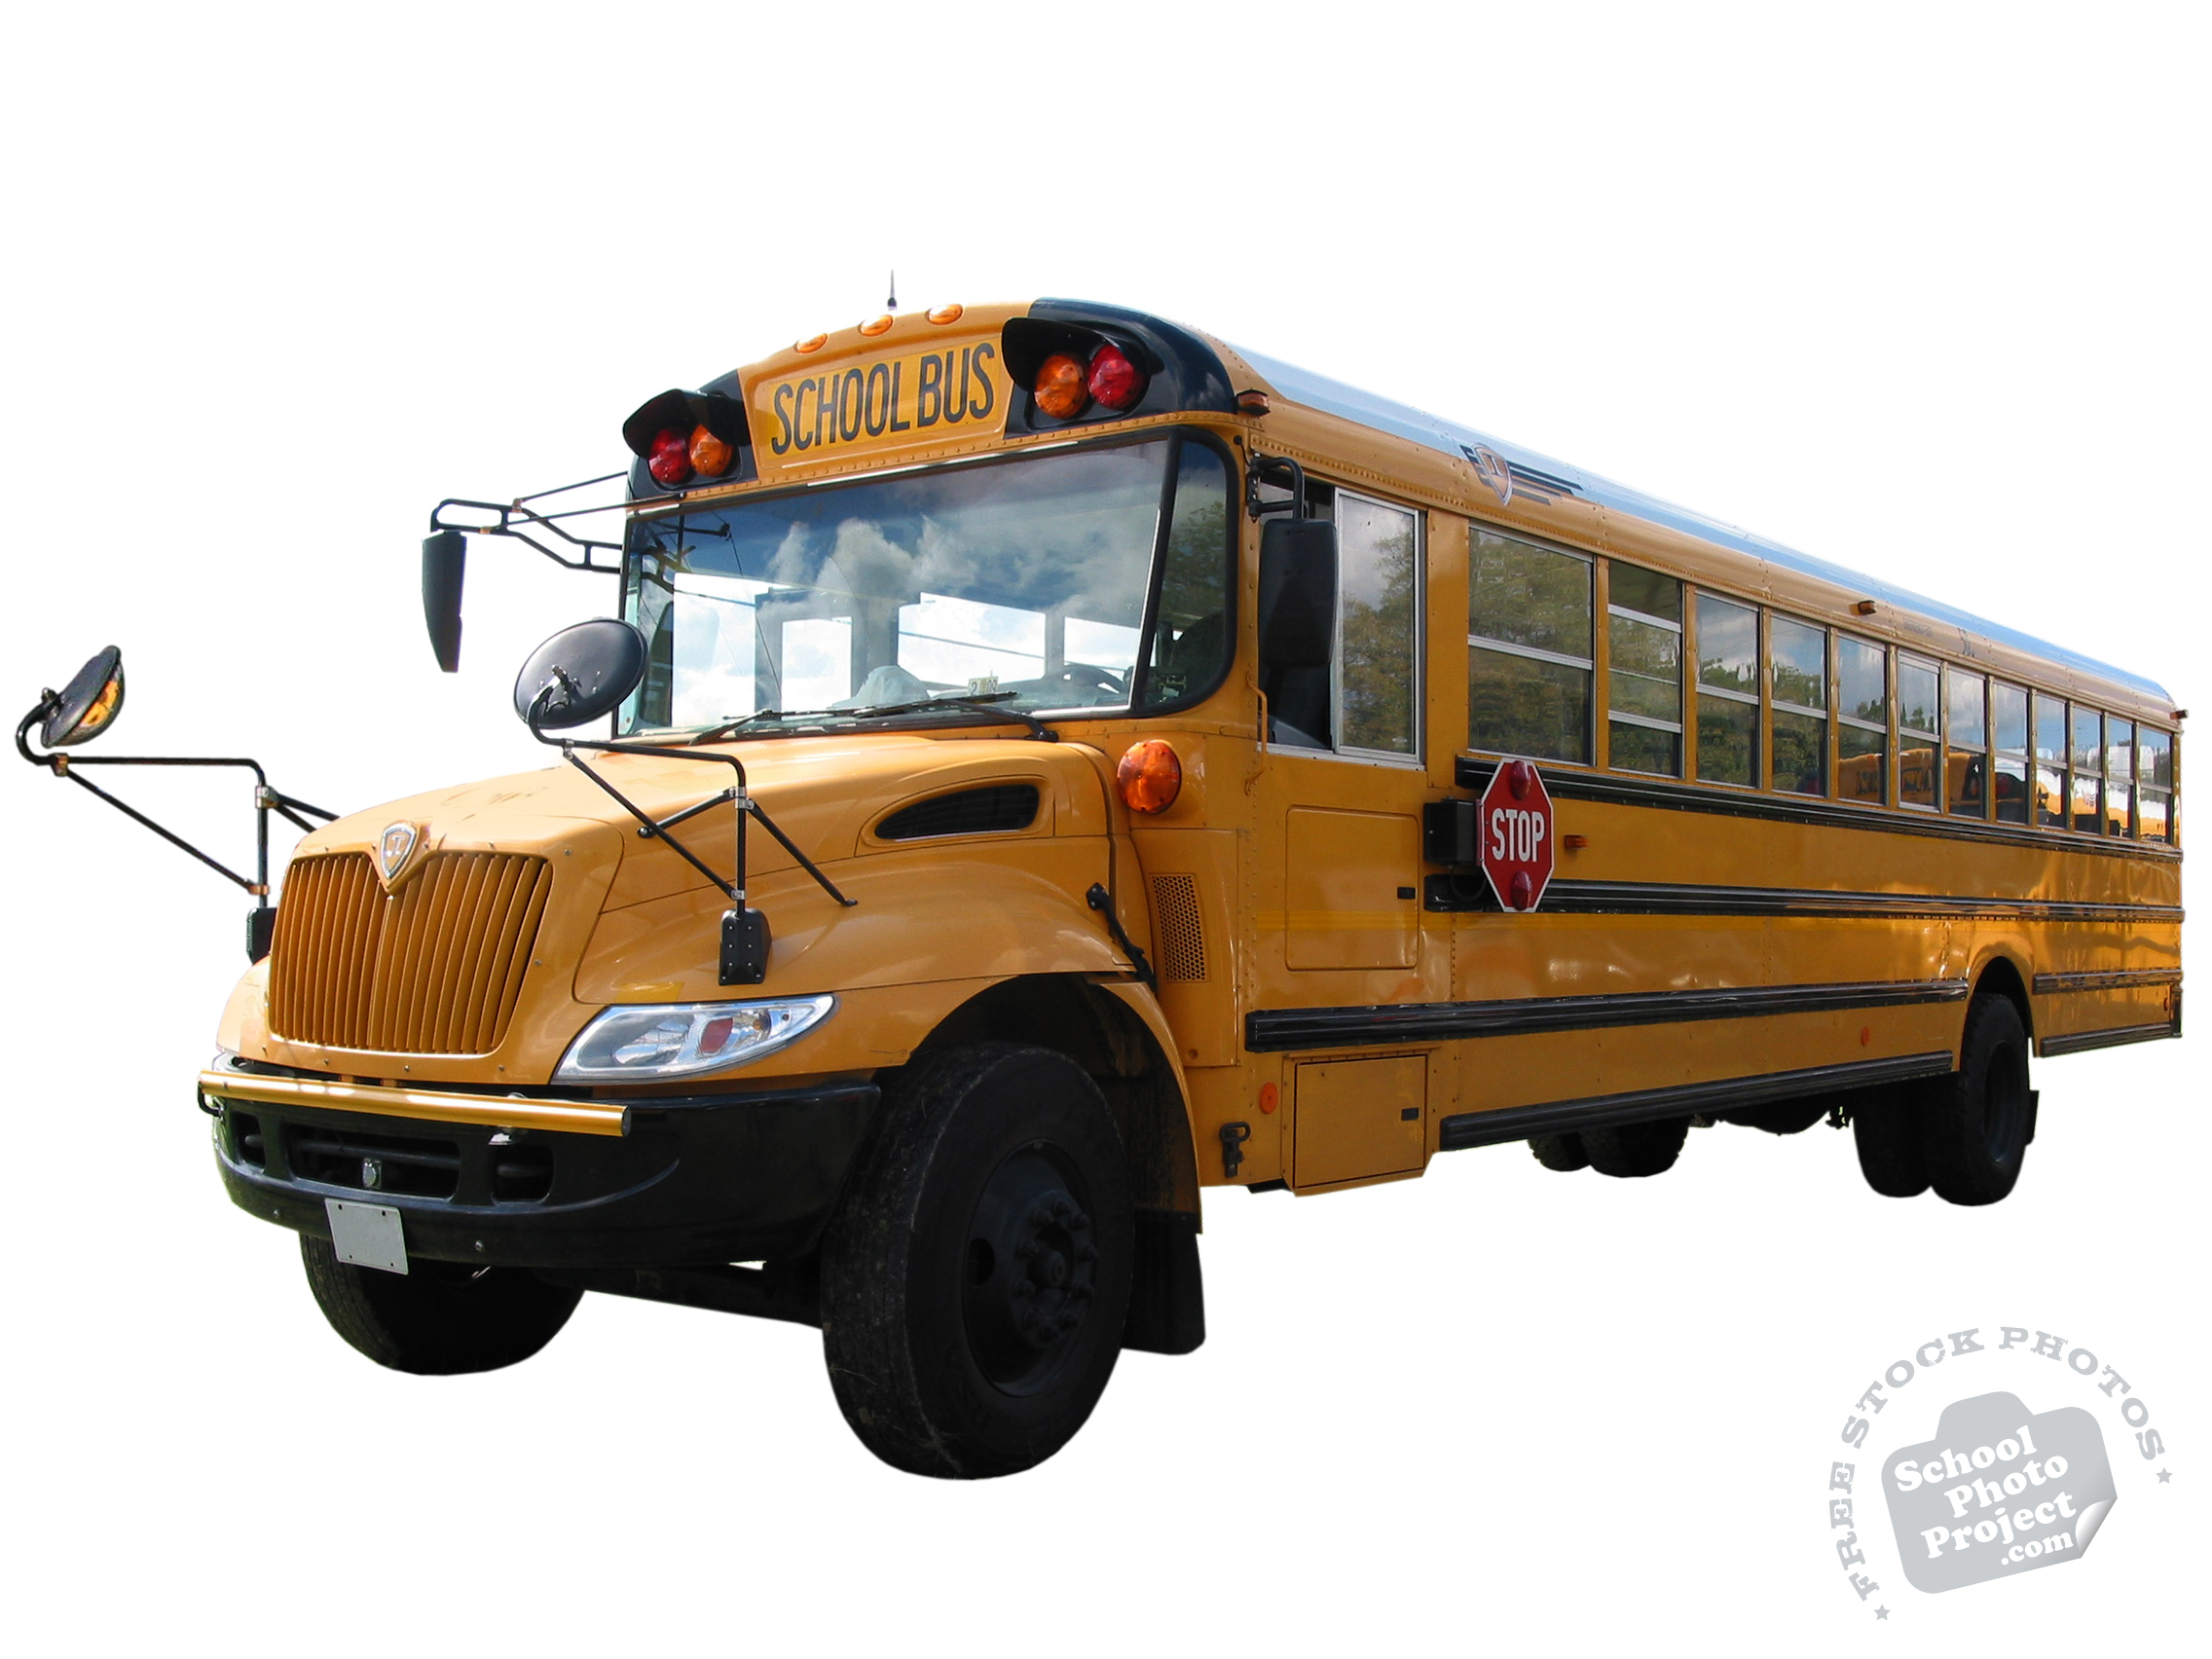 School Bus Free Stock Photo Image Picture School Bus Royalty